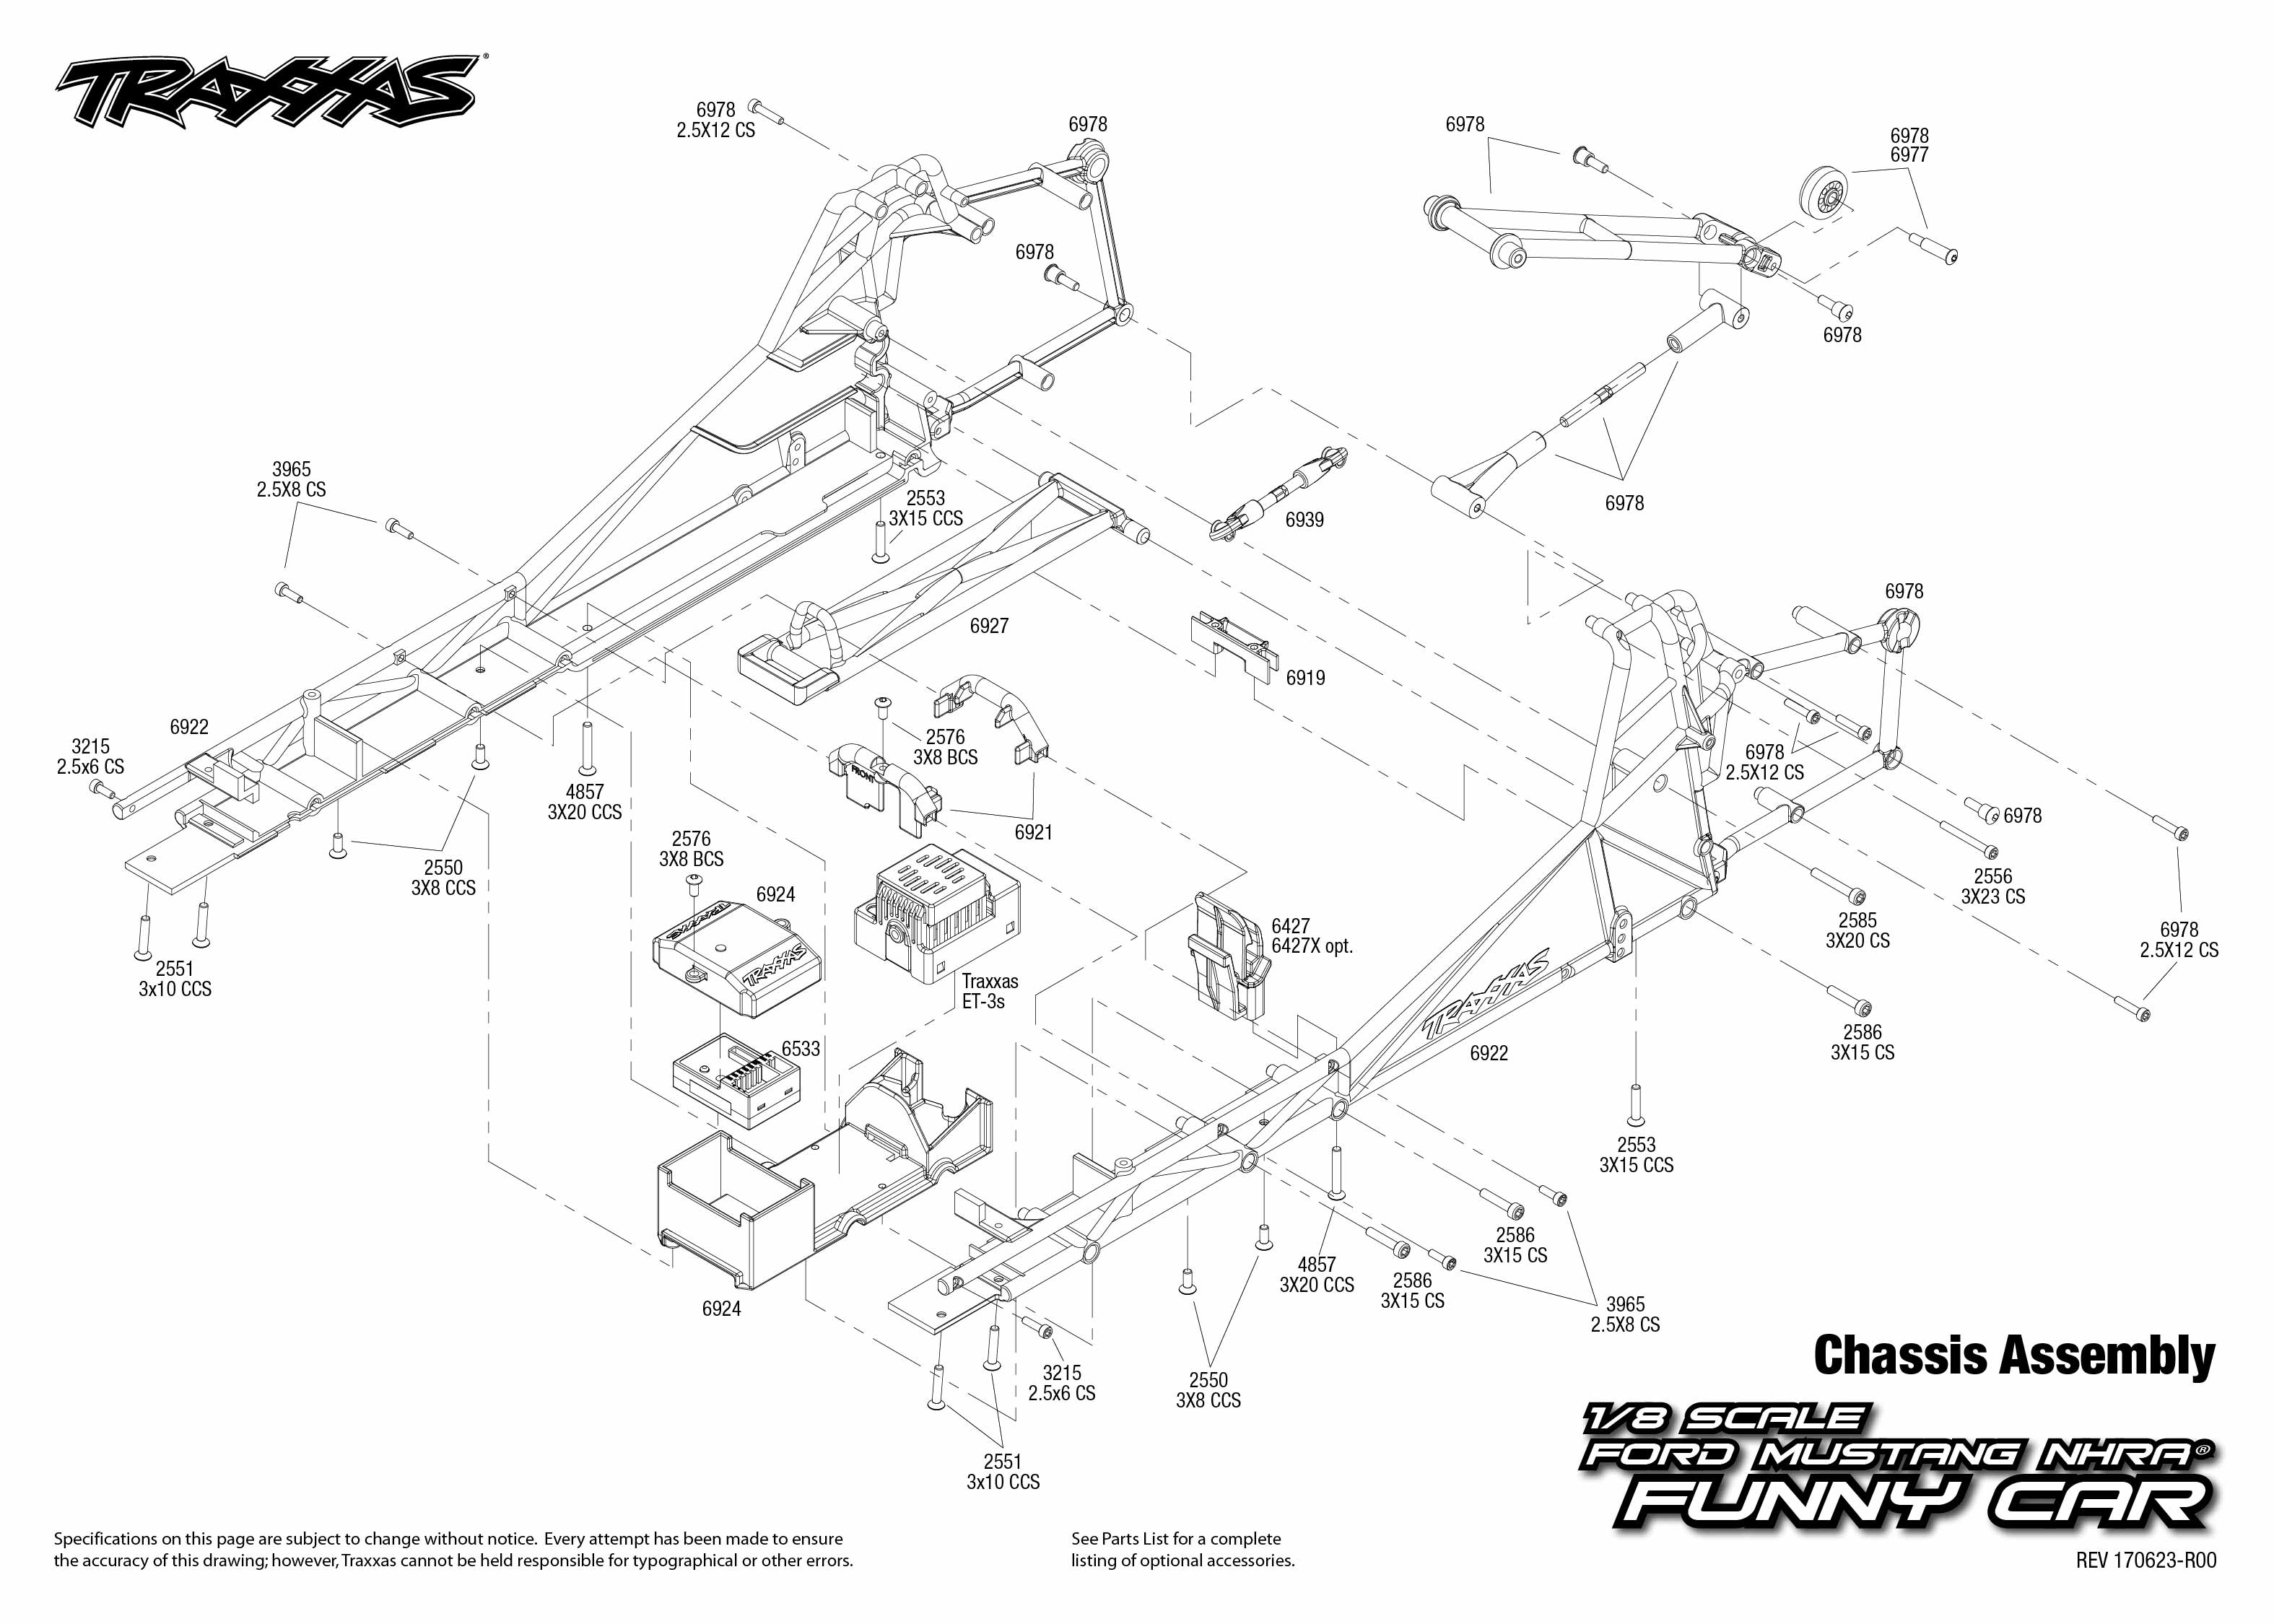 Funny Car 4 Chassis Assembly Exploded View